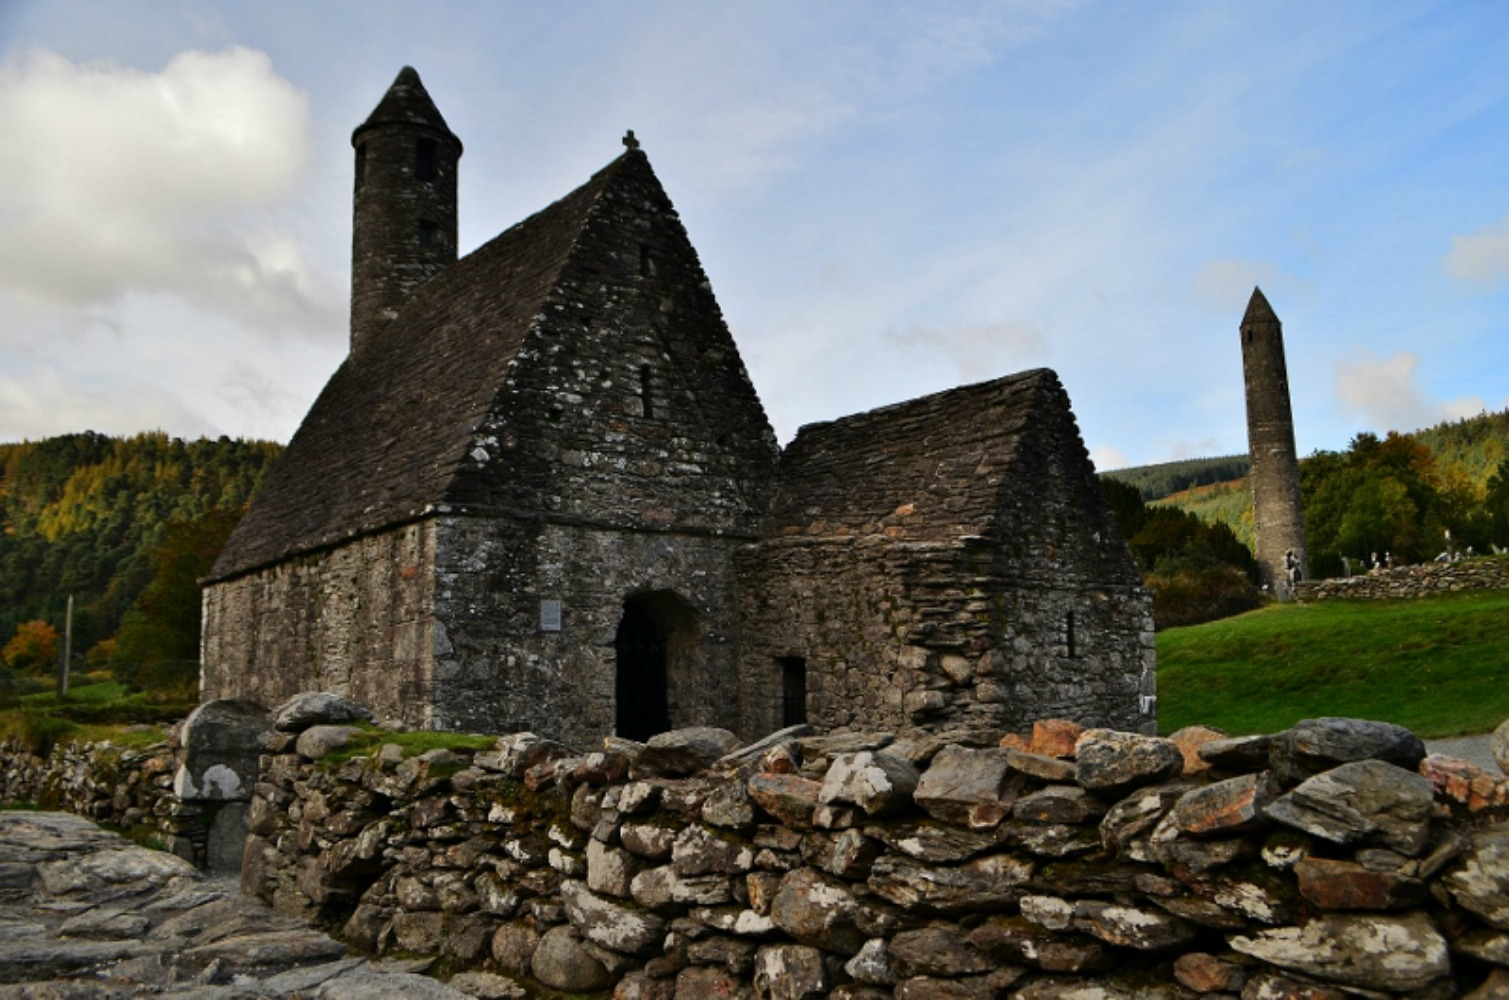 Gelndalough is home to one of the most important monastic sites in Ireland. Photo courtesy Lorraine Parker.